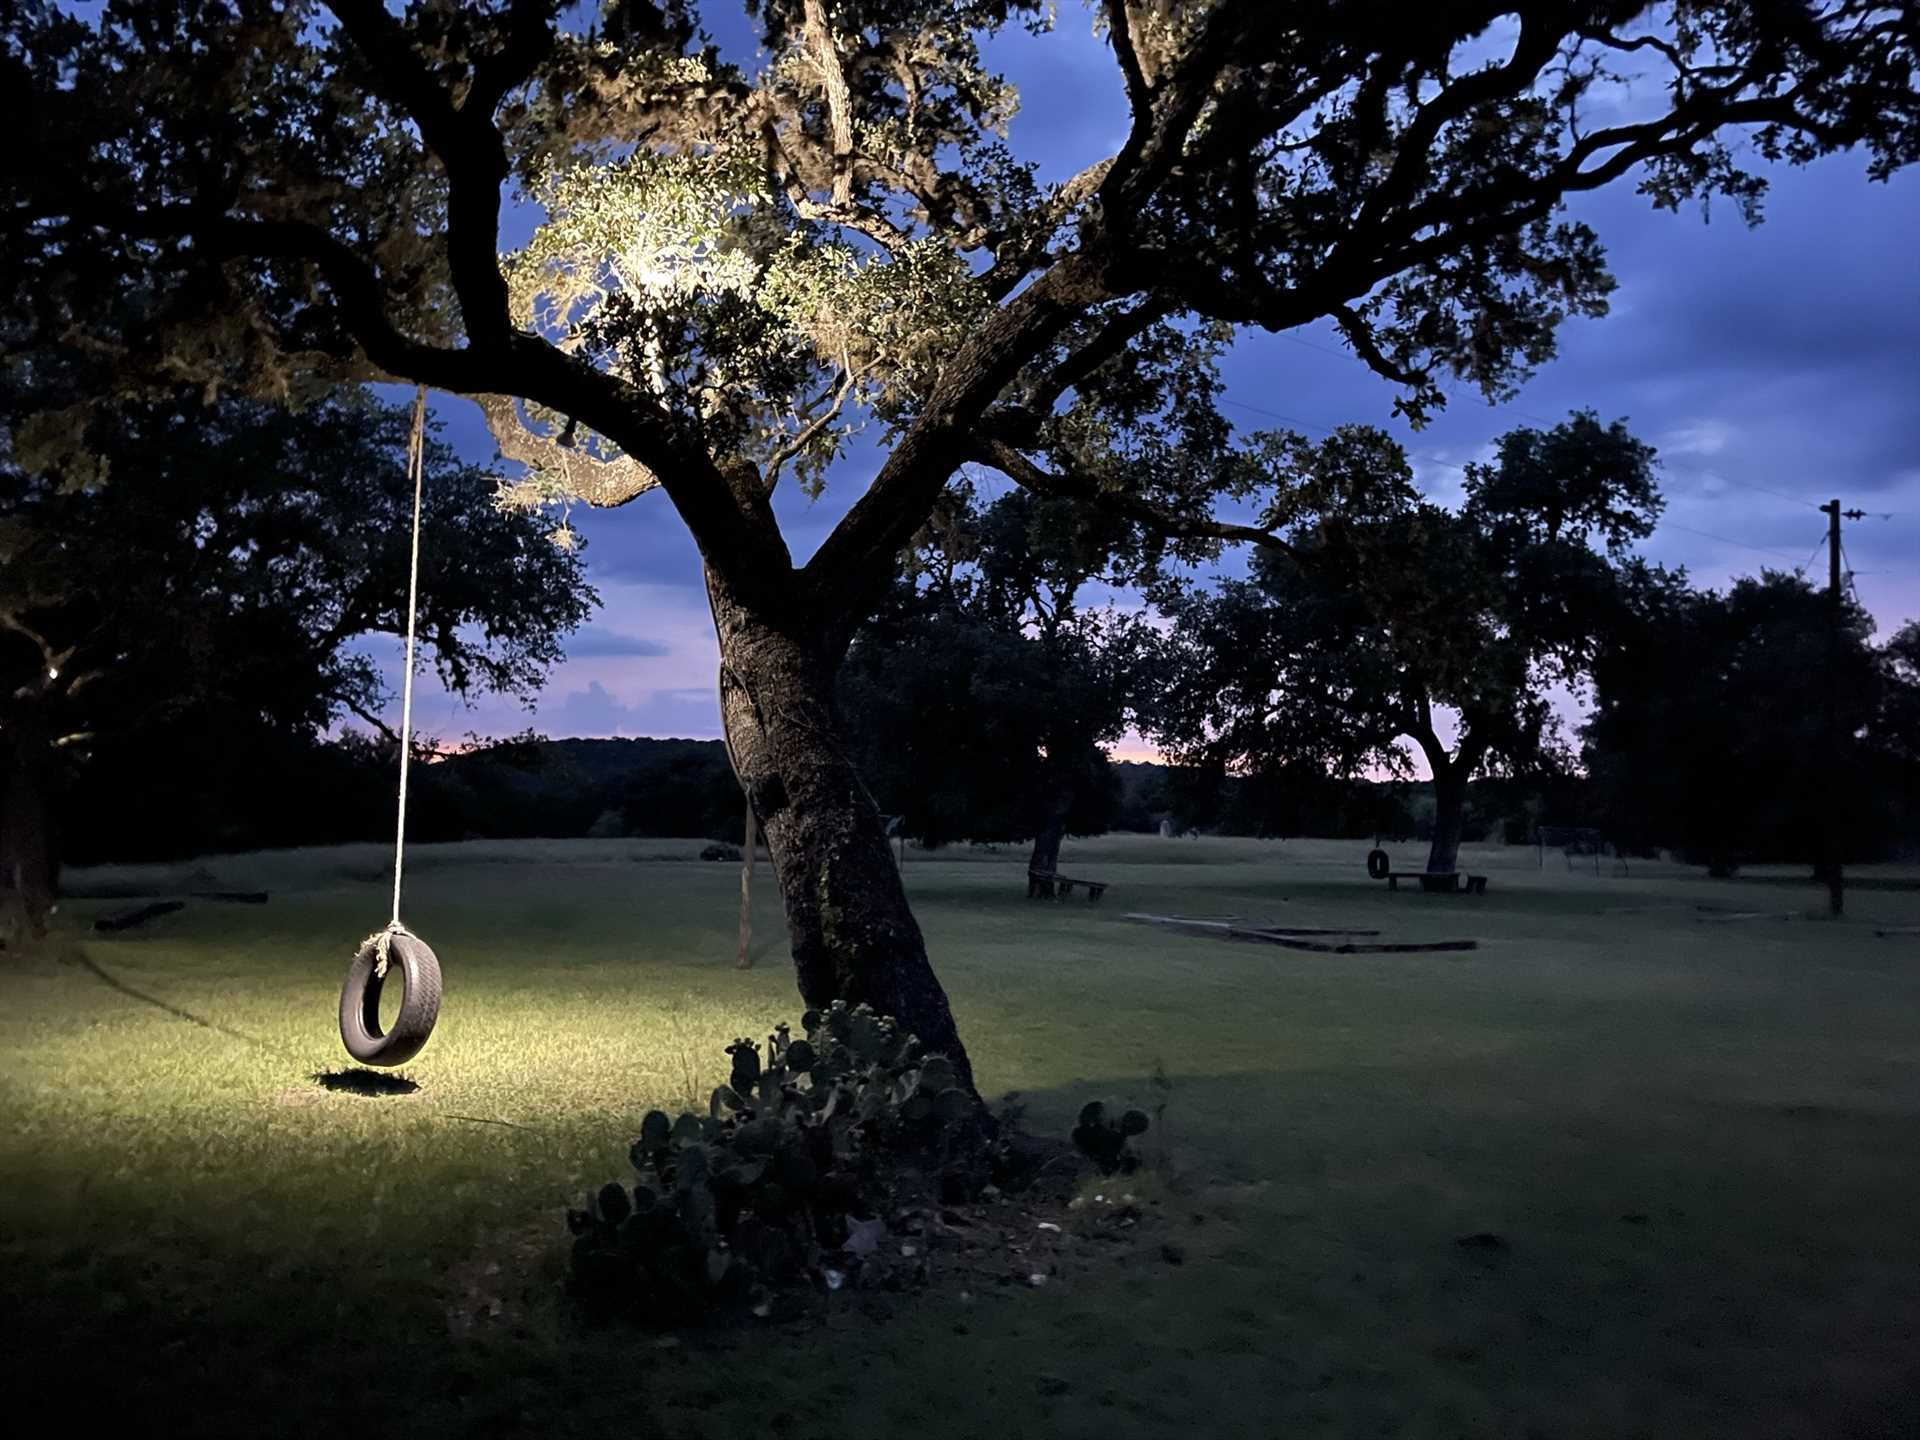 The old-fashioned tire swing out back provides simple country fun-and it's lit for day and night use!